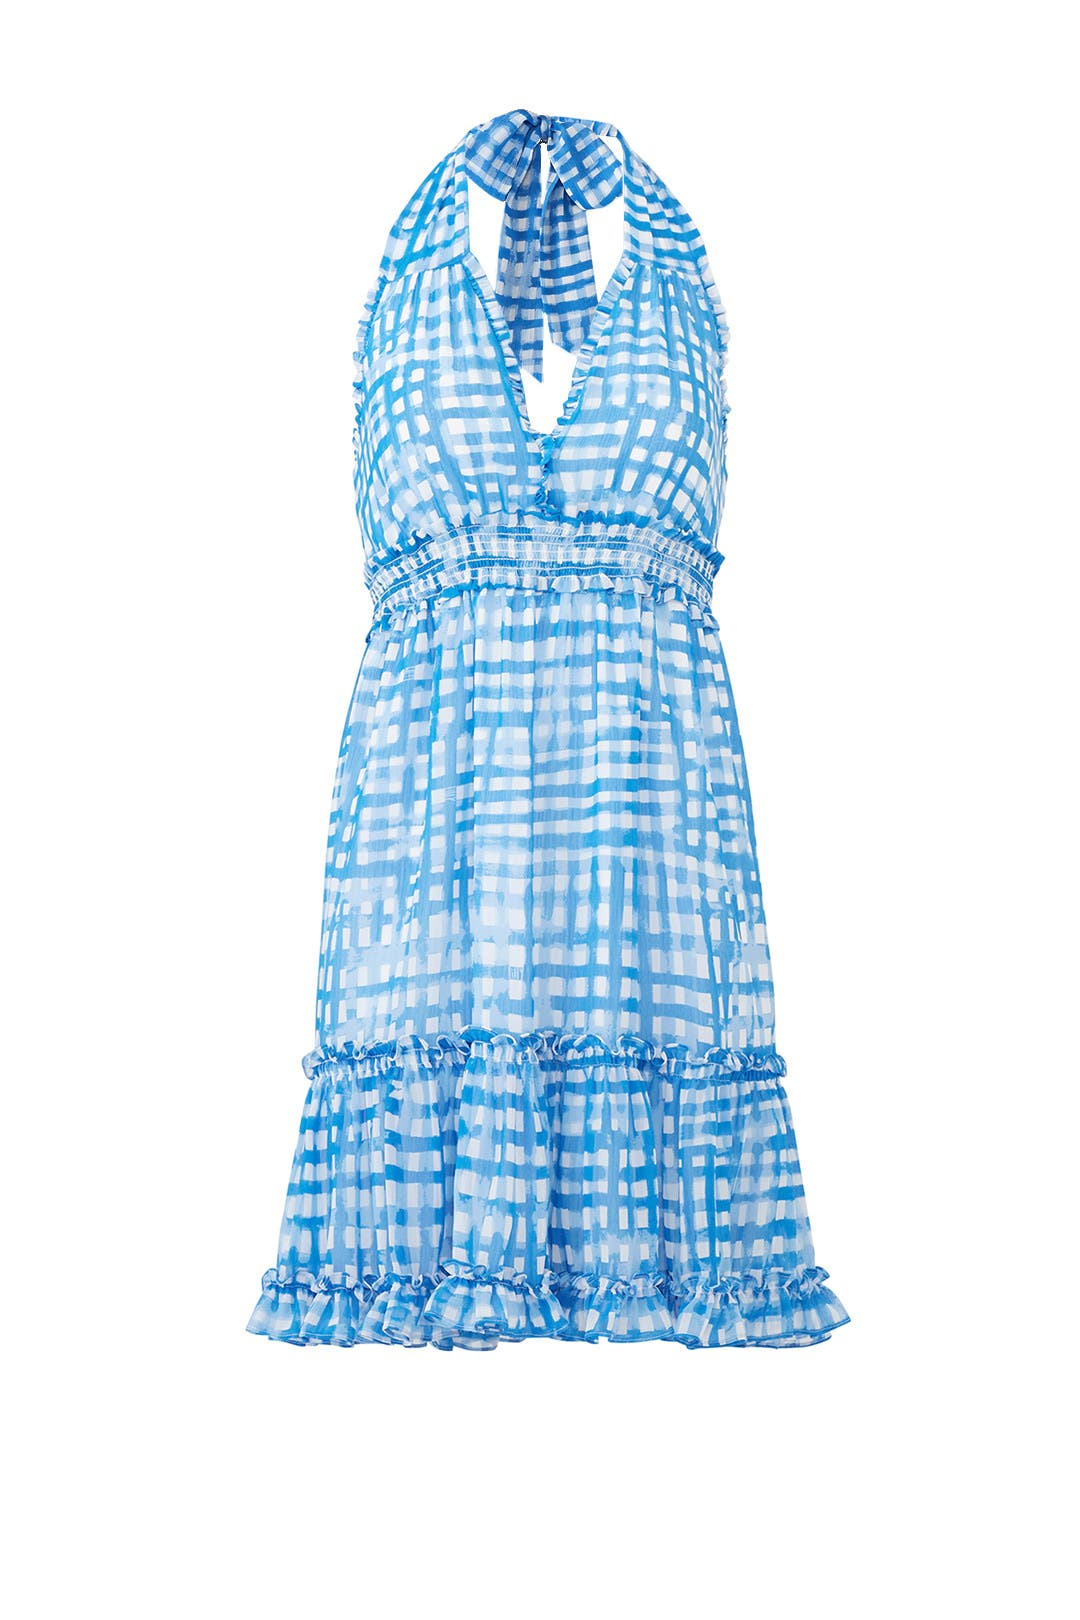 Blue Gingham Cailee Dress by Lilly Pulitzer for $30 | Rent the Runway